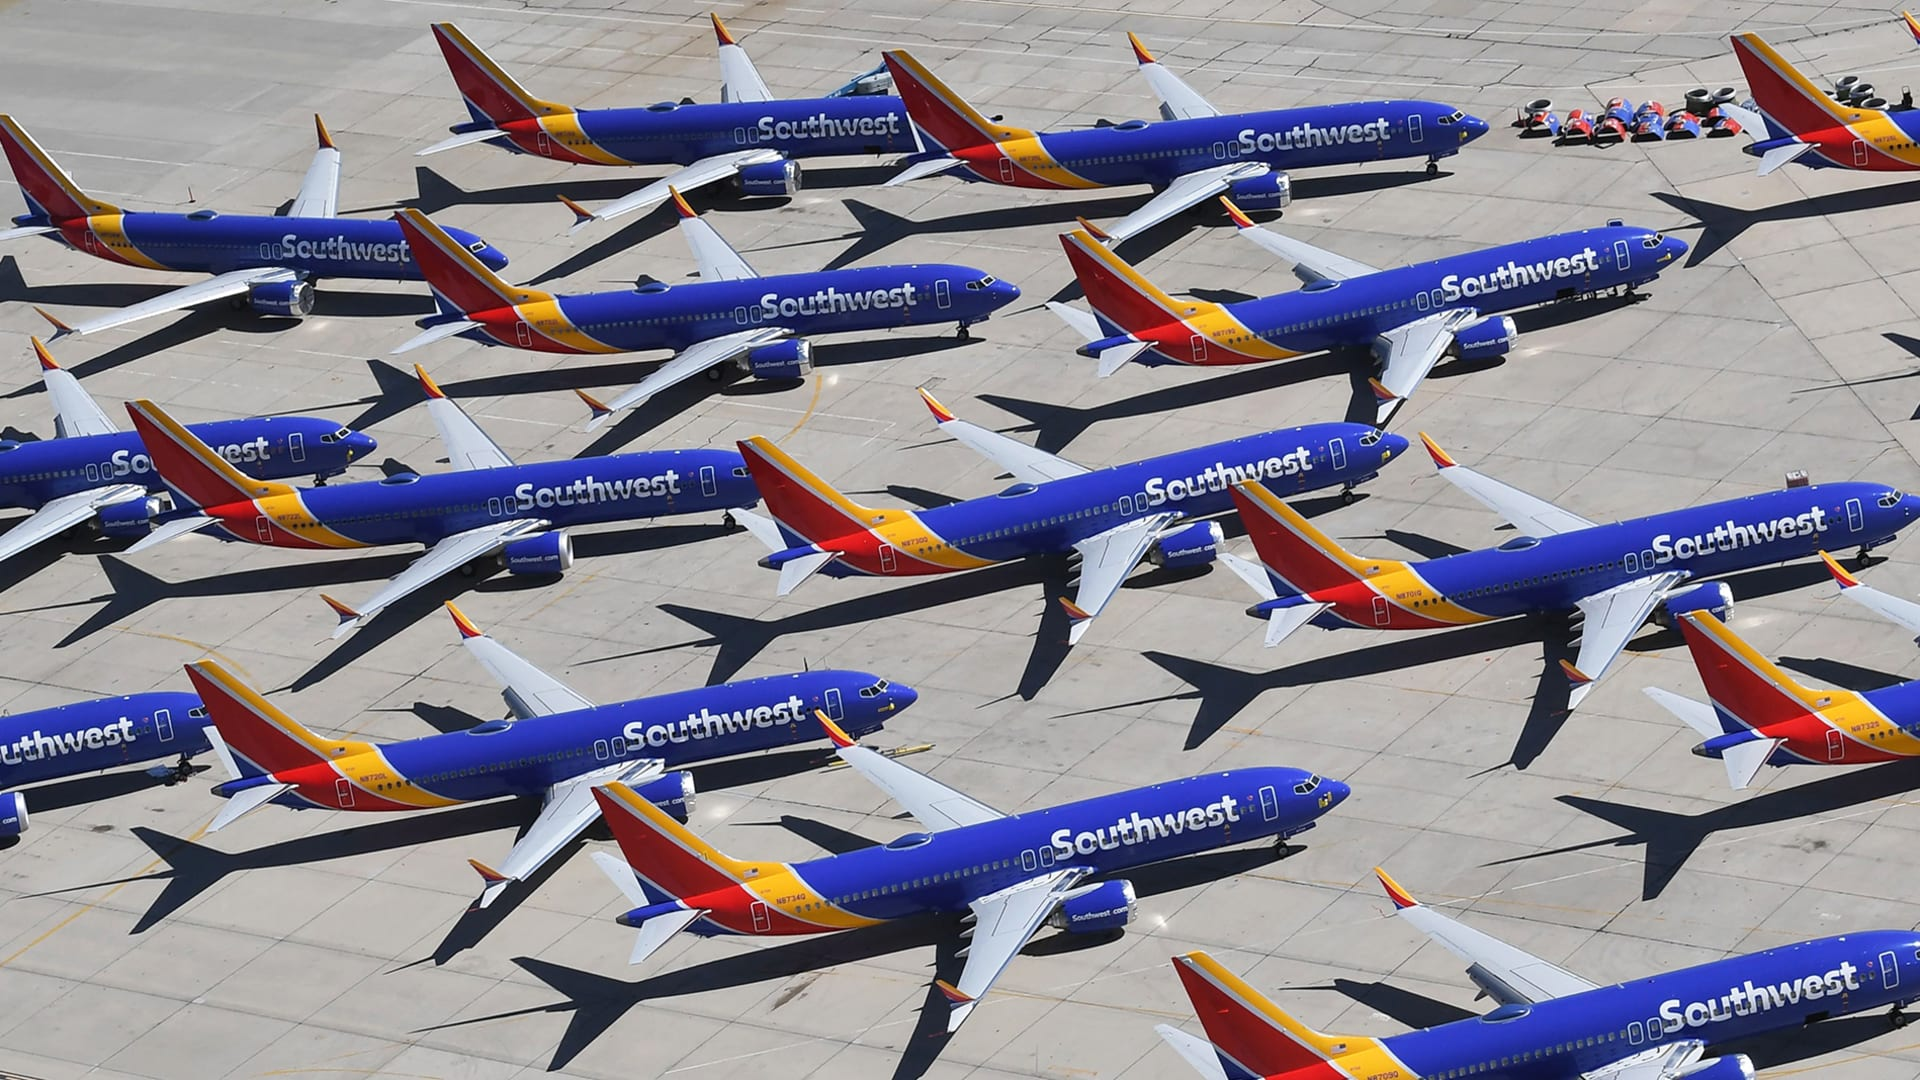 Southwest Airlines Just Made a Long-Awaited Change, and It Looks Like the End of an Era